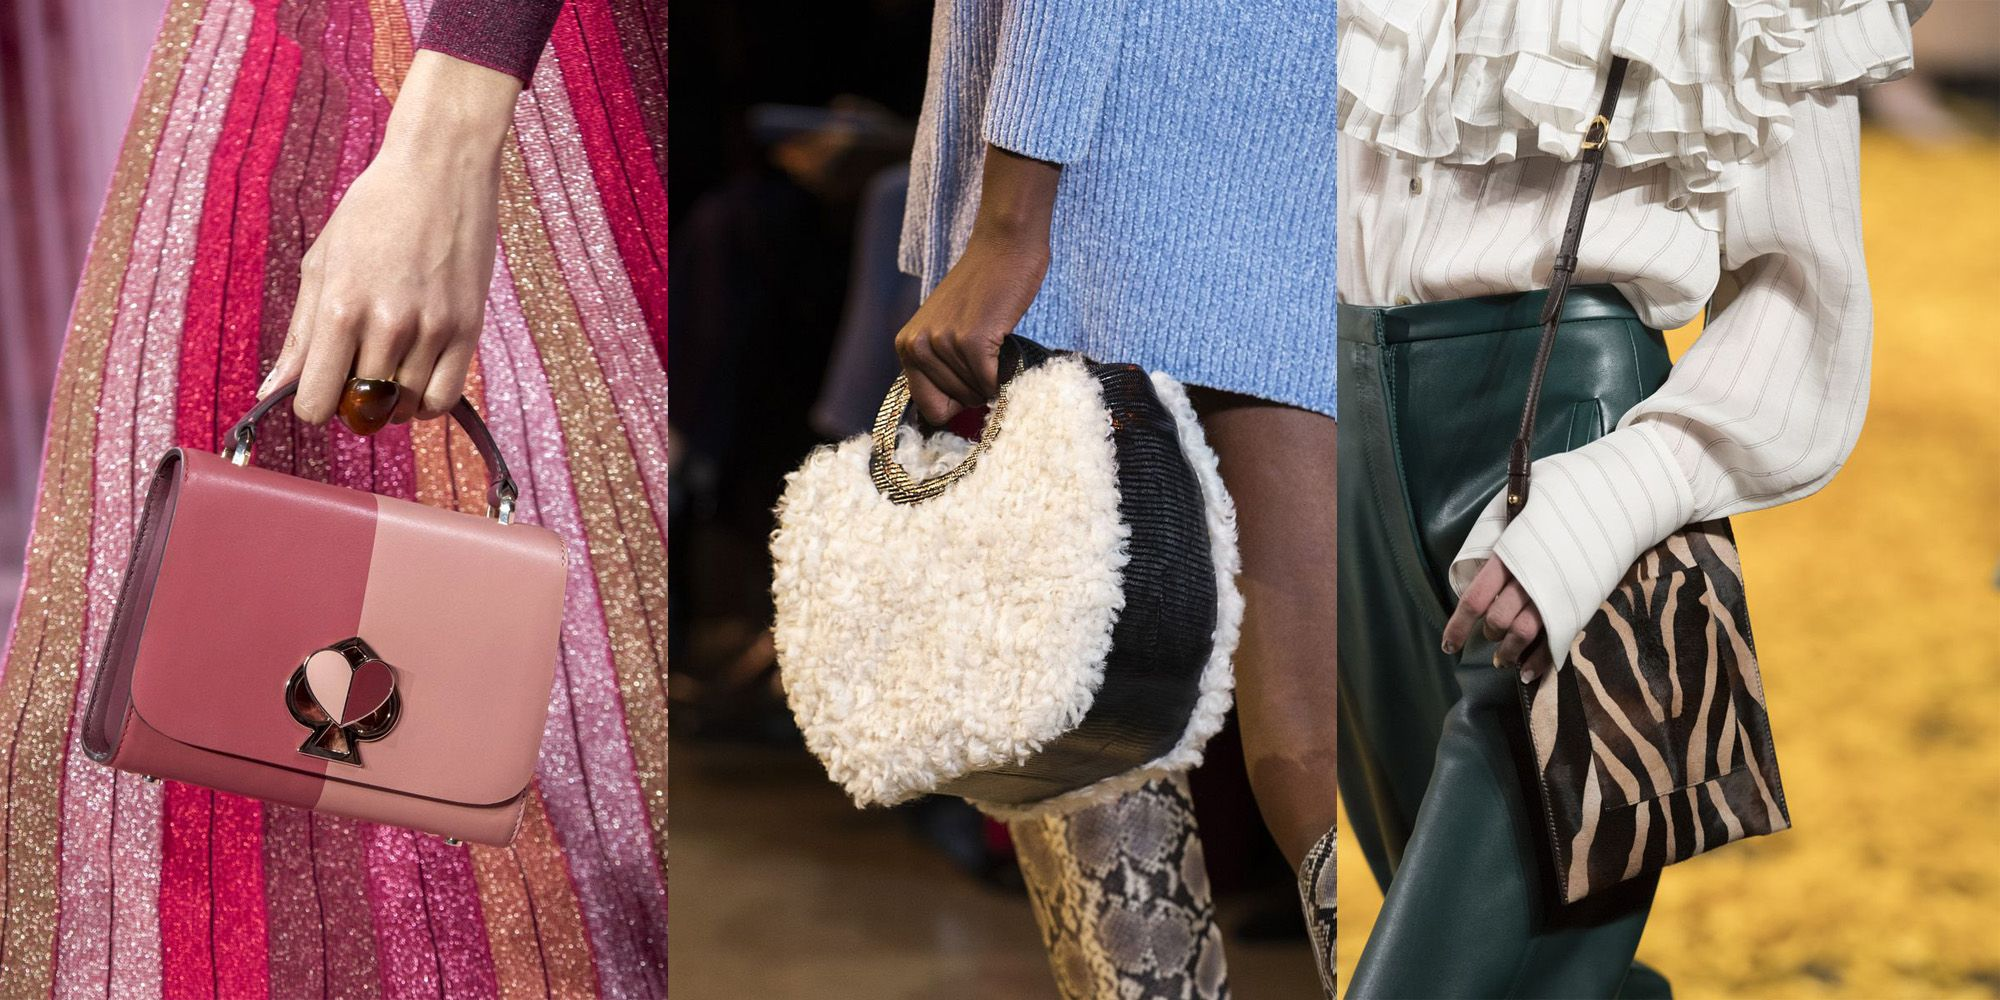 f5a2f713833d 10 Fall Bag Trends 2019 — Top Fall Accessory Runway Trends For Women